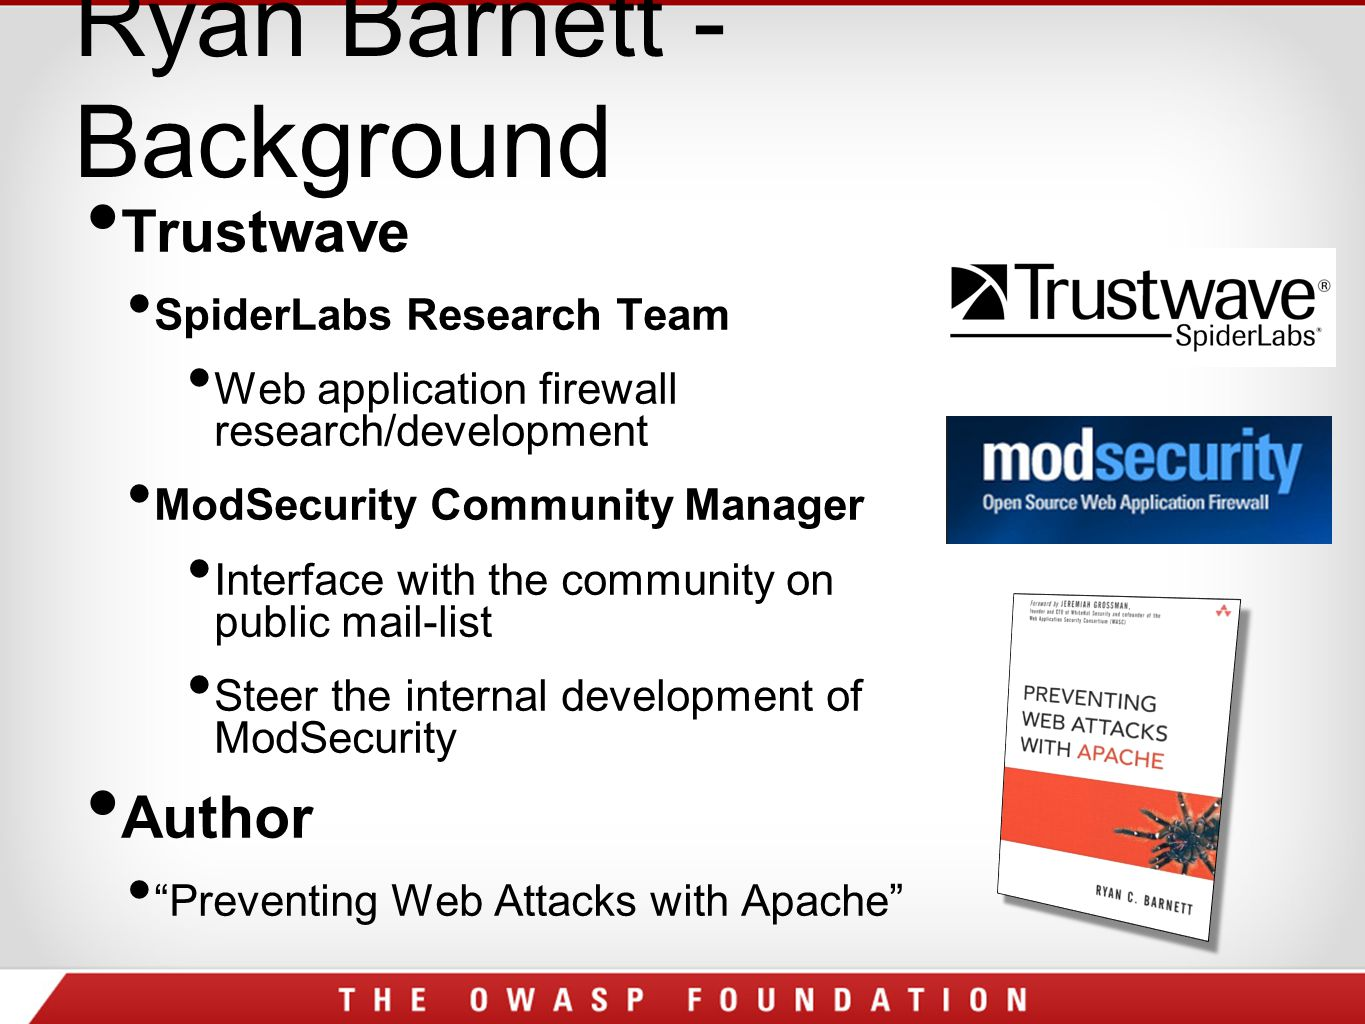 Ryan Barnett - Background Trustwave SpiderLabs Research Team Web application firewall research/development ModSecurity Community Manager Interface with the community on public mail-list Steer the internal development of ModSecurity Author Preventing Web Attacks with Apache